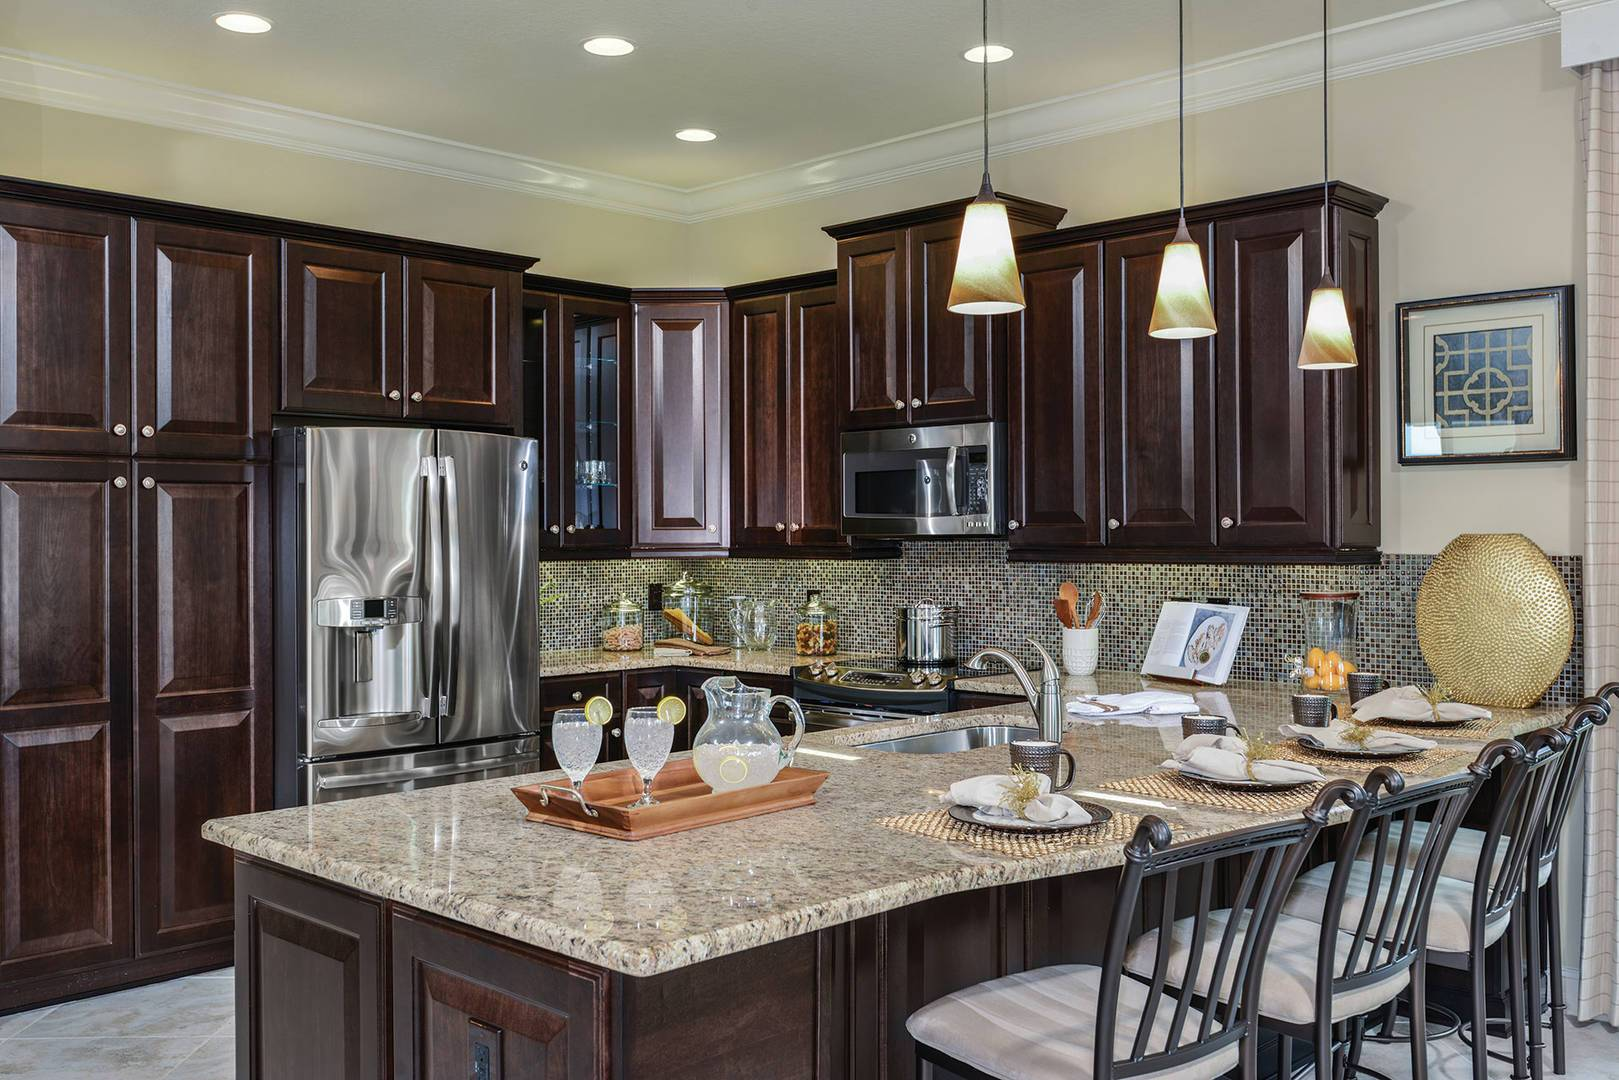 Kitchen featured in the Marsala By GL Homes in Tampa-St. Petersburg, FL